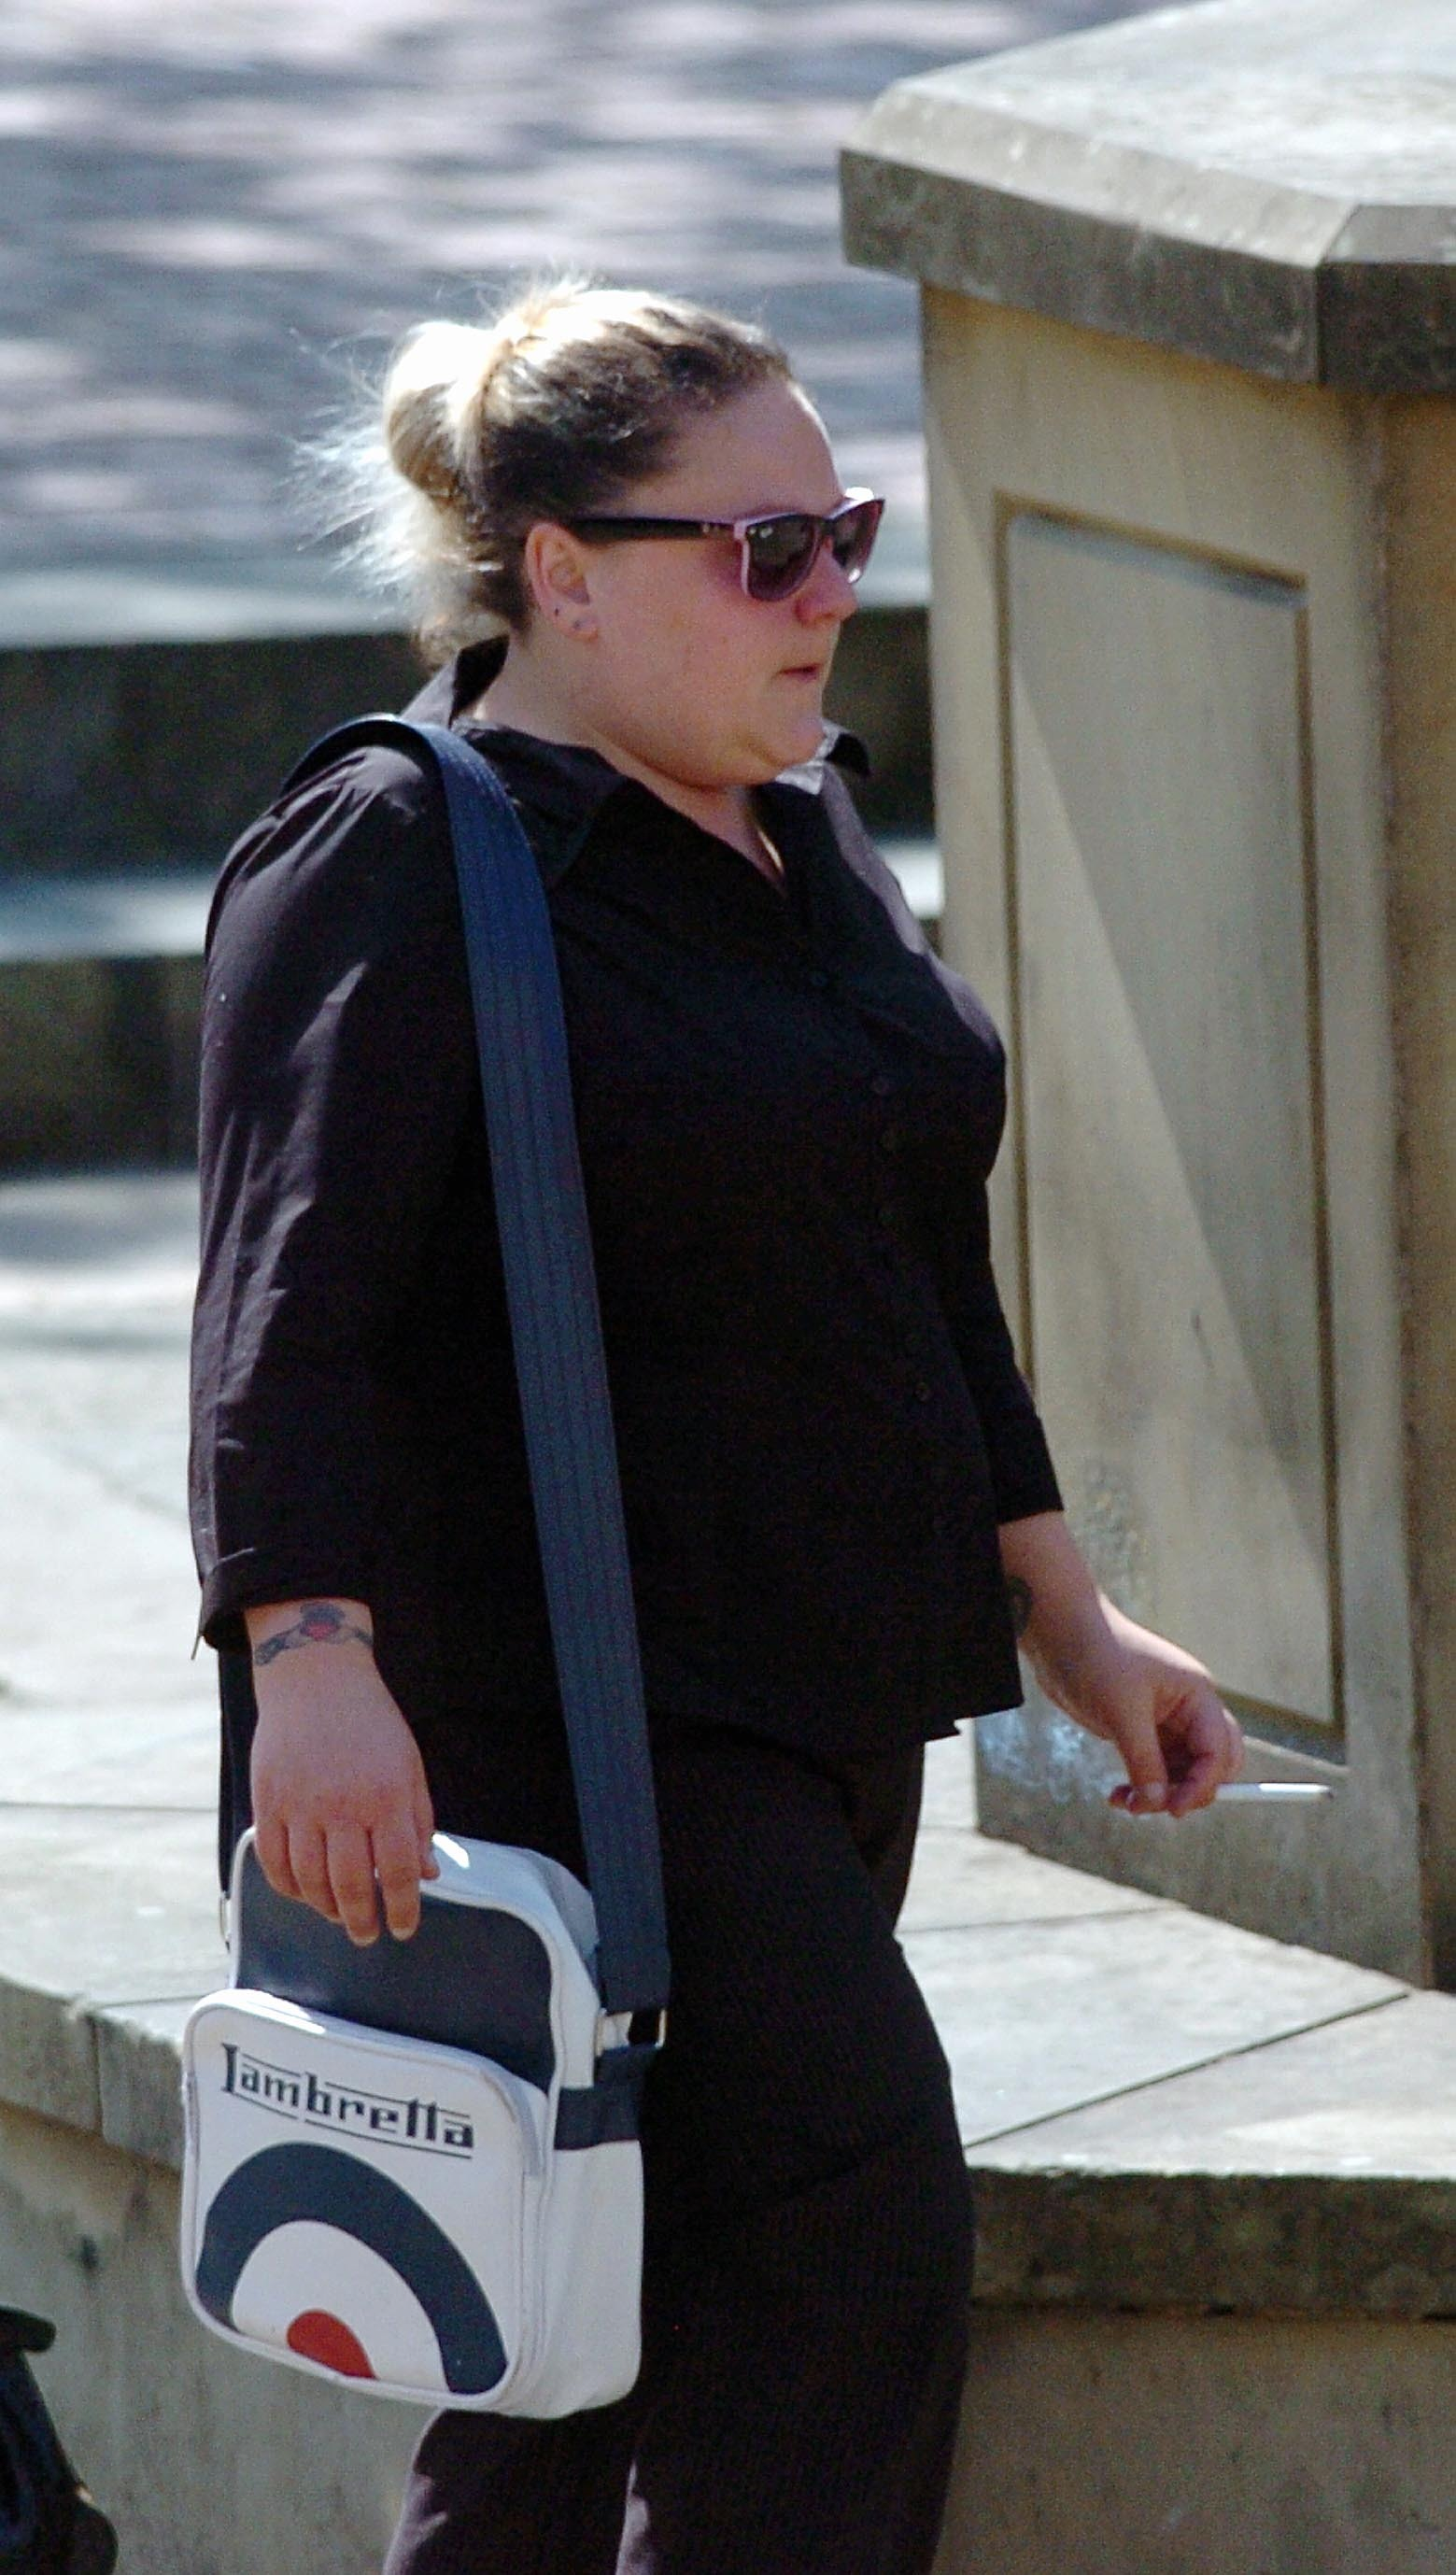 Cleaner stole £3,000 from disabled woman